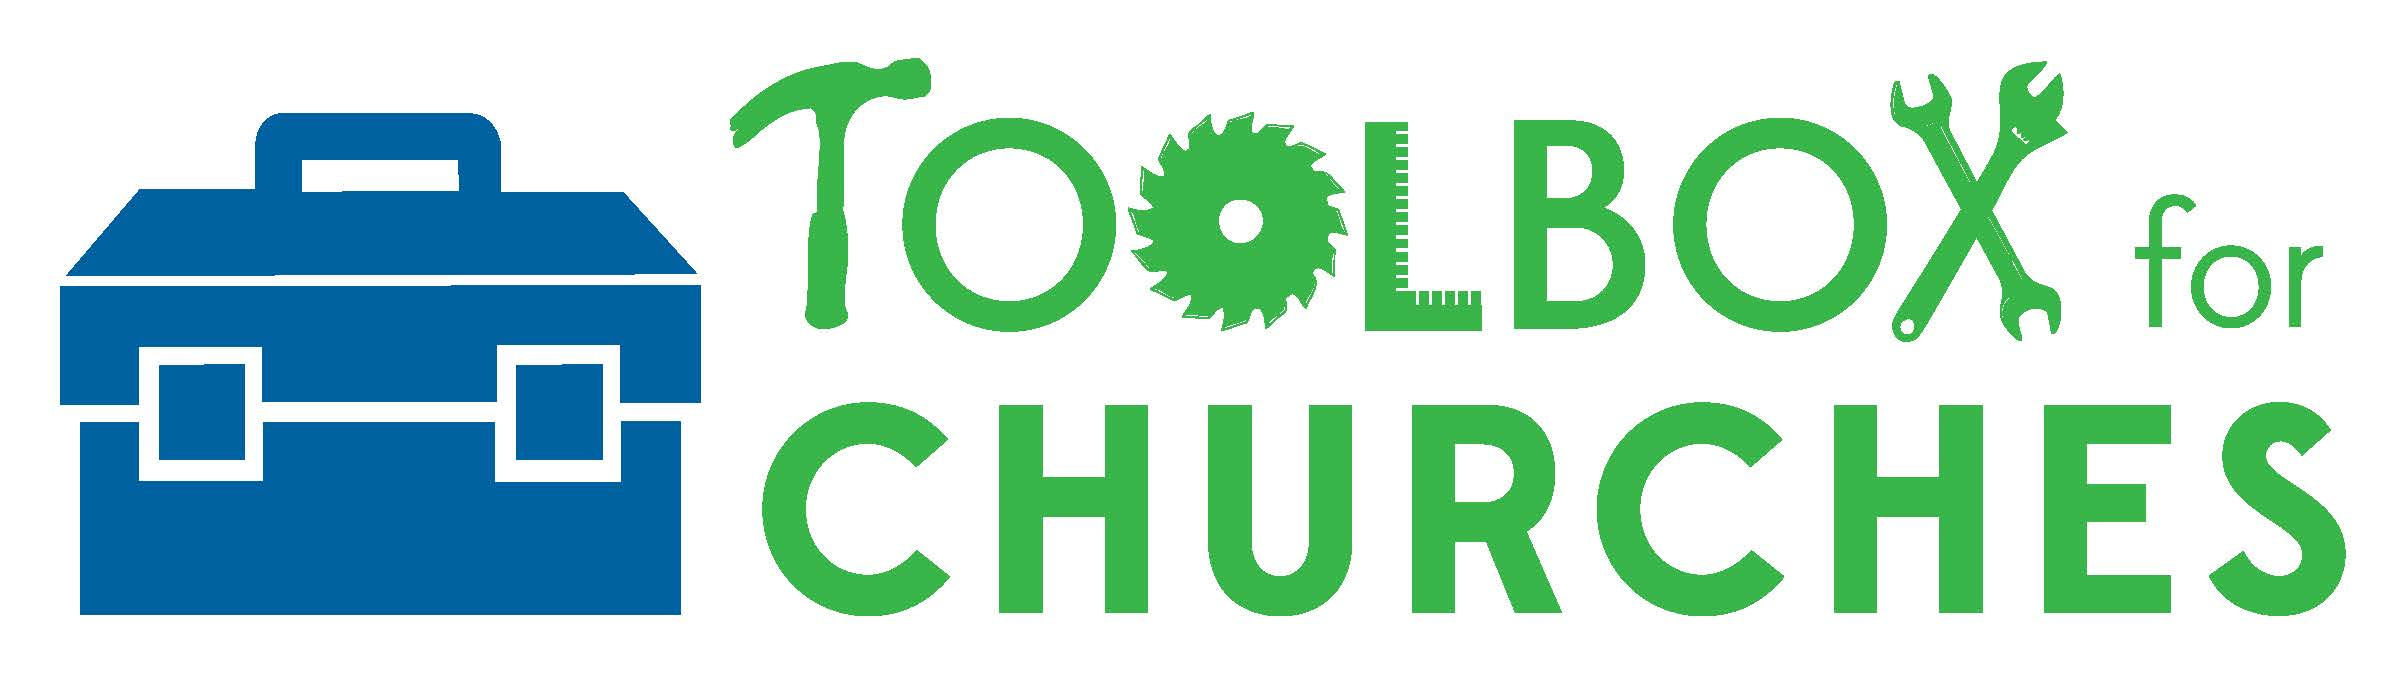 Toolbox for churches logo